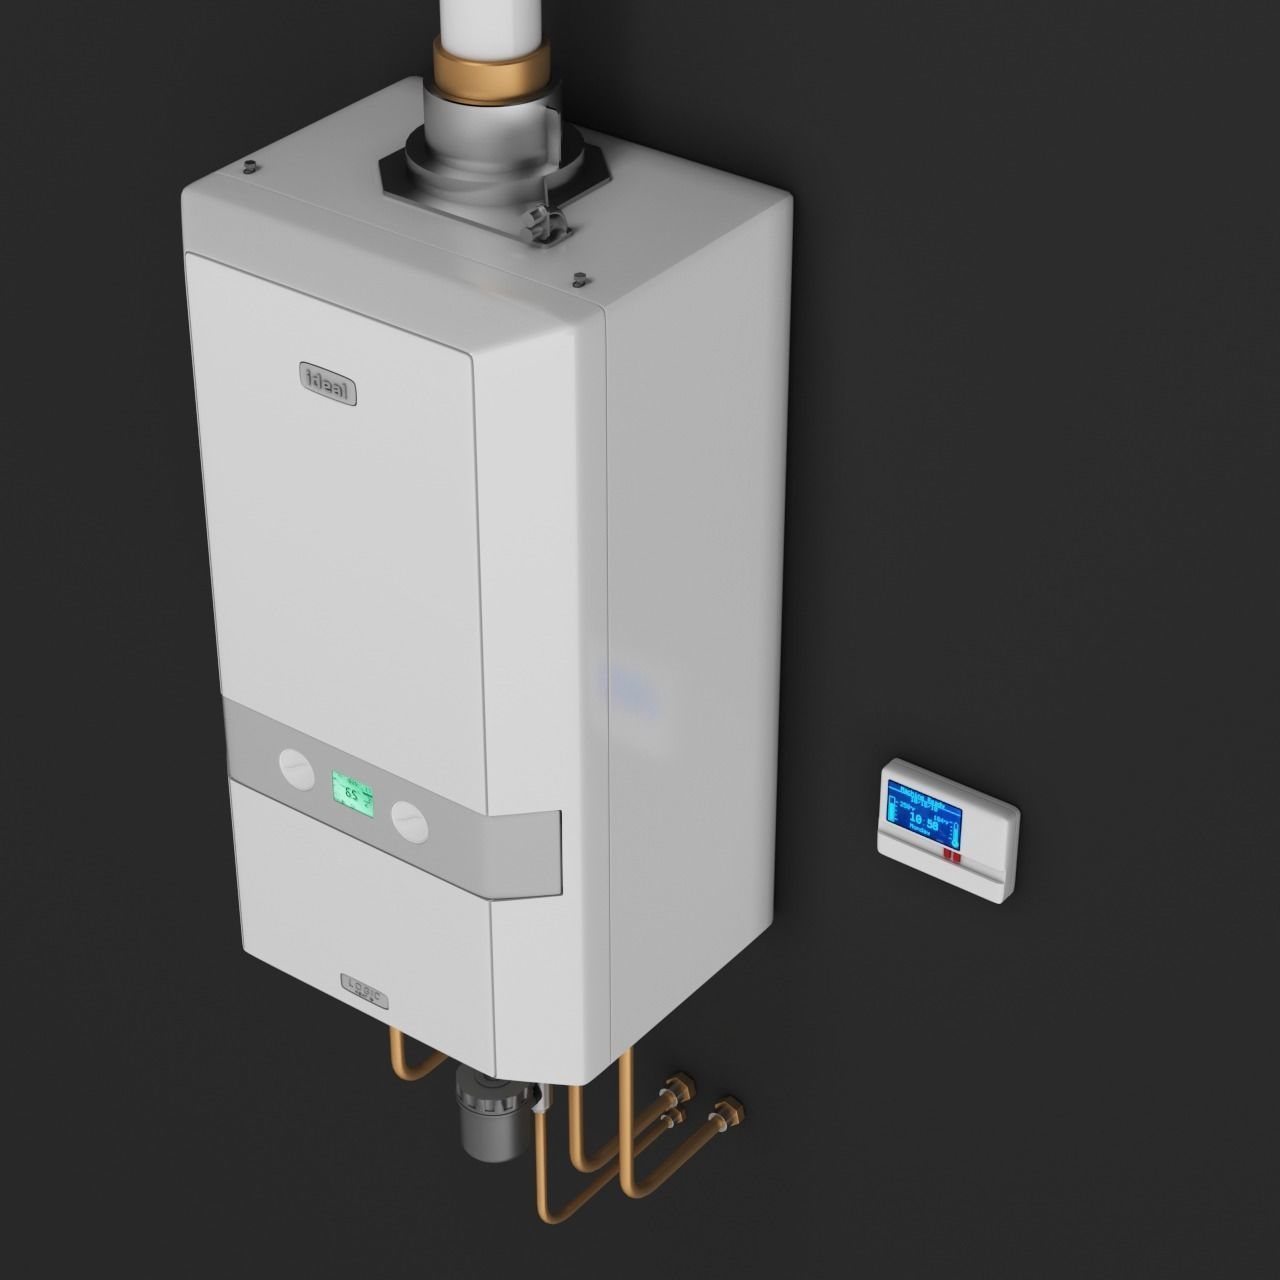 Ideal Logic Heat Domestic Boiler with control unit